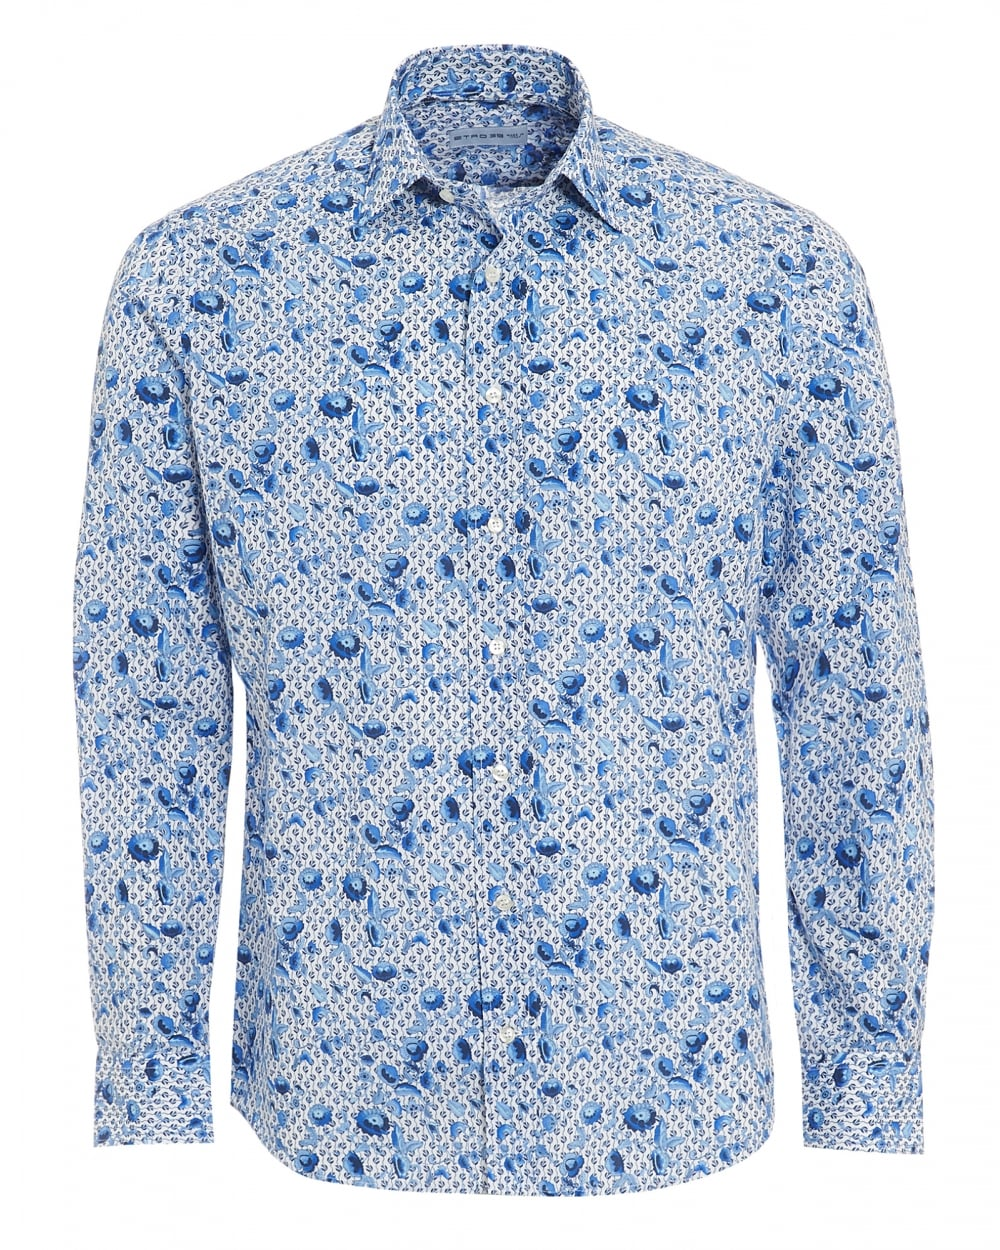 Etro mens micro leaves floral shirt regular fit white for Blue floral shirt mens